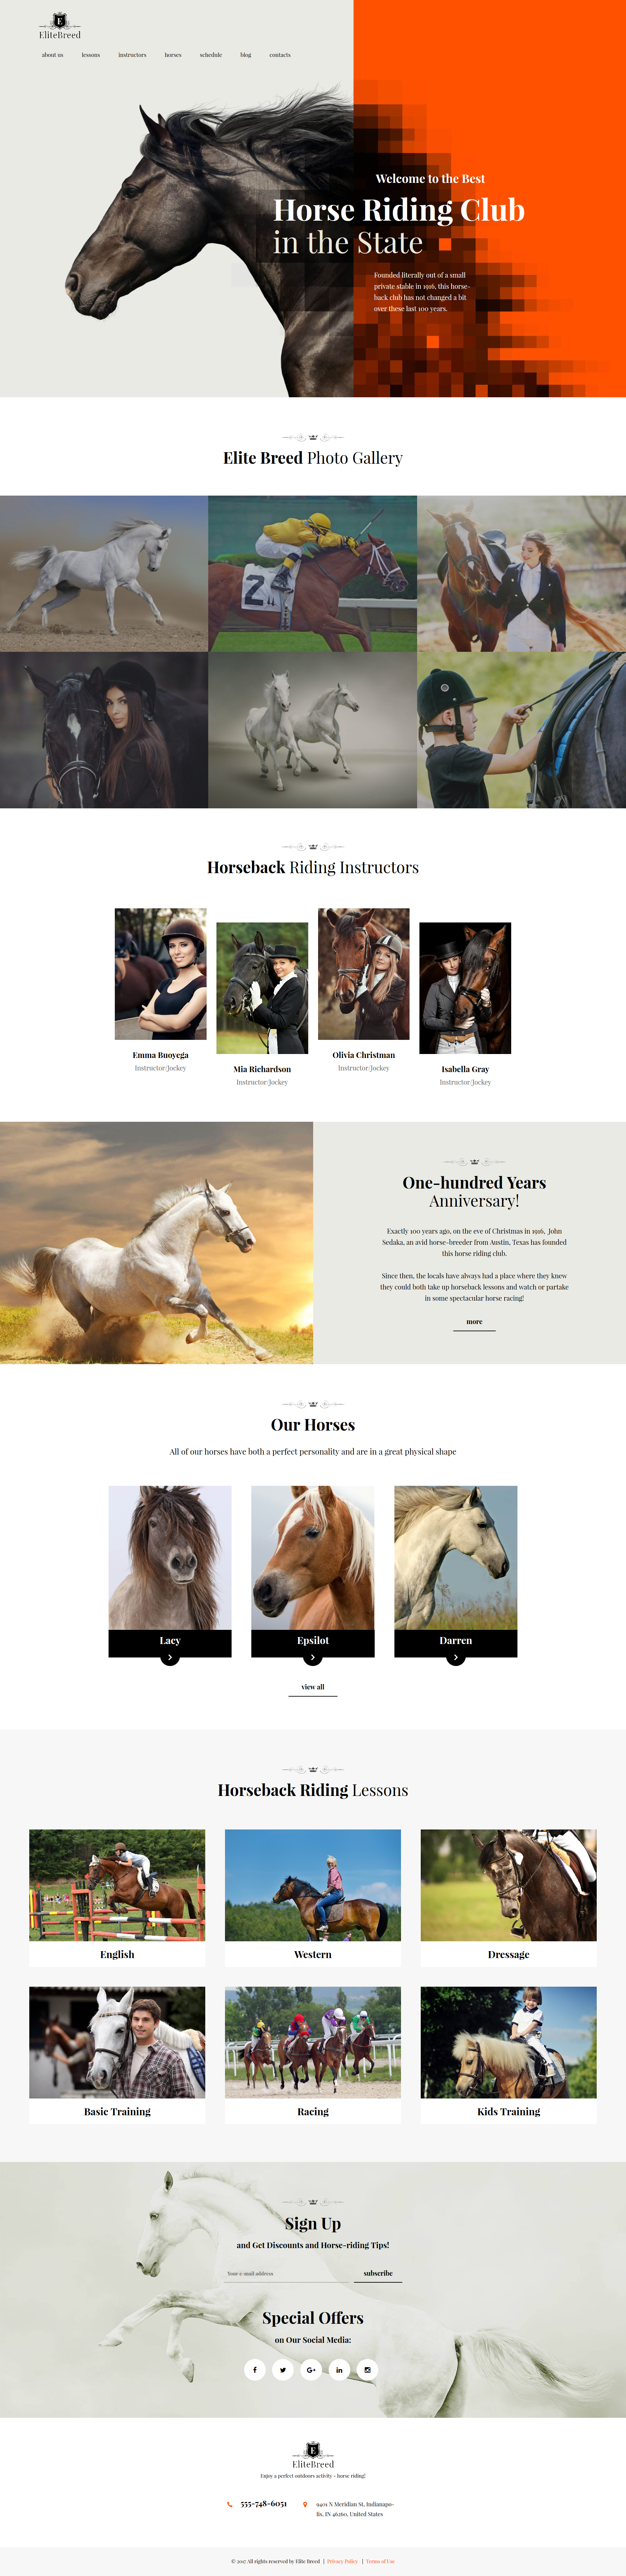 Elite Breed - Equestrian & Horse Riding Club WordPress Theme - screenshot